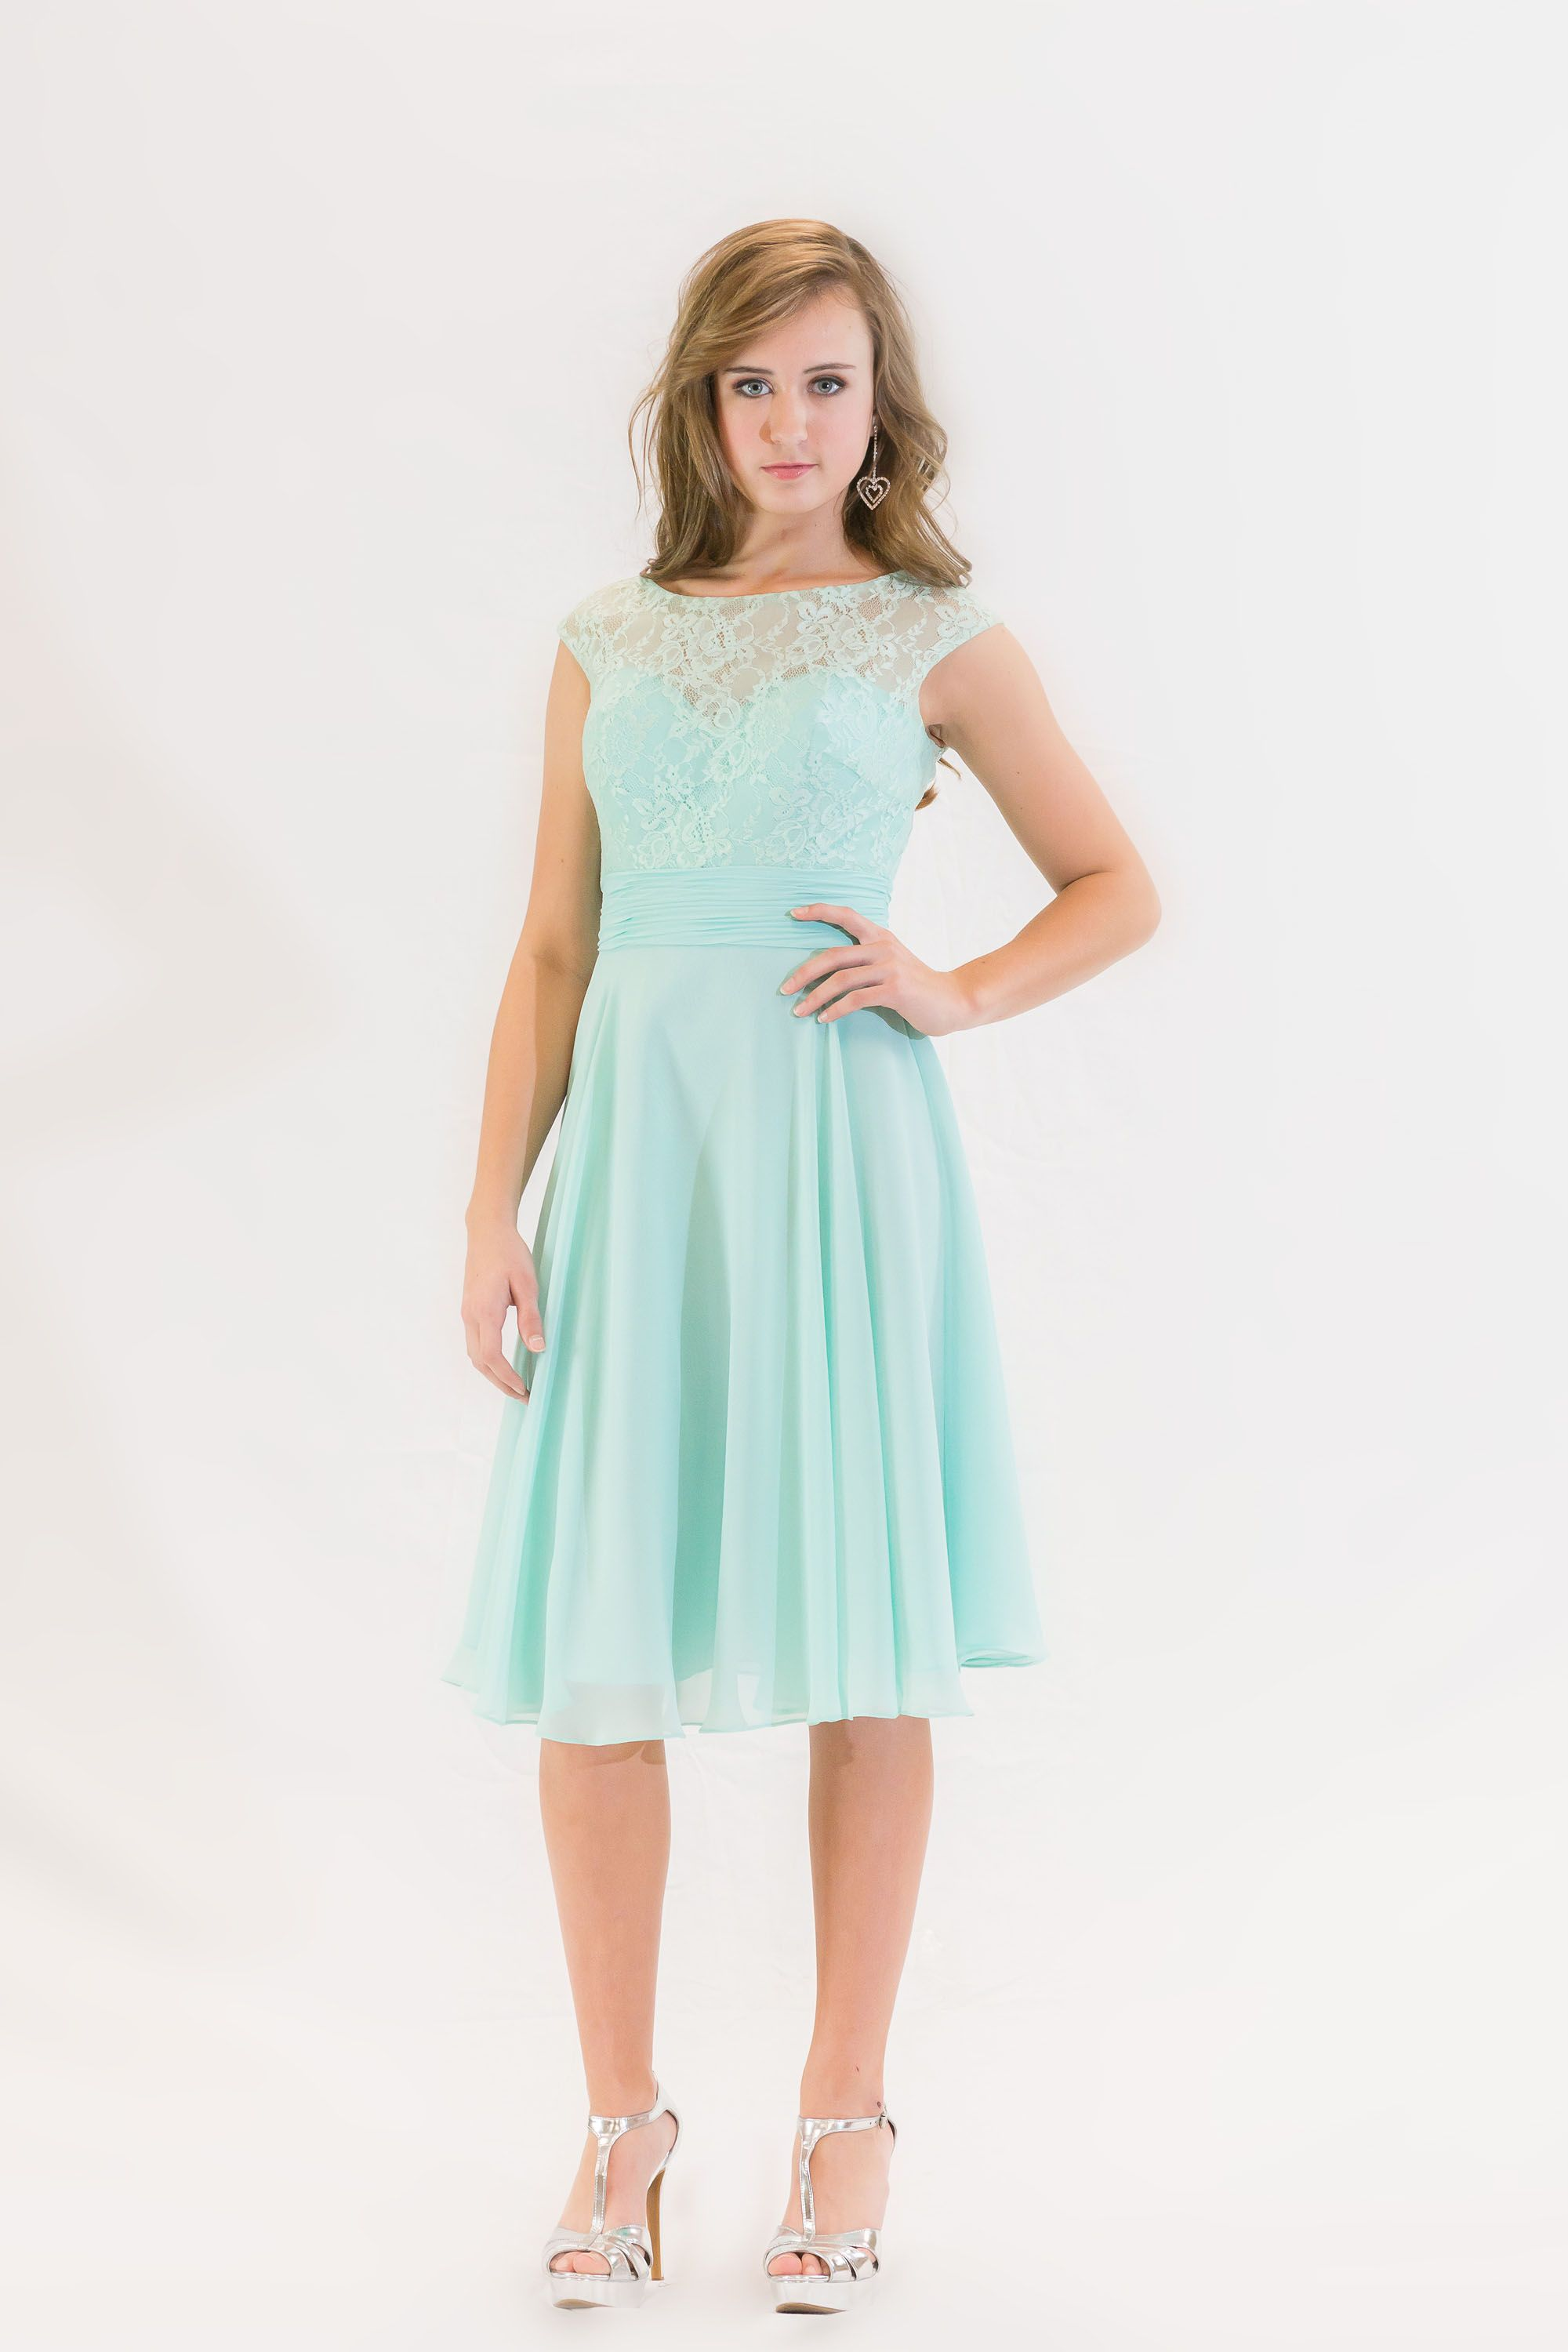 NEW Bridesmaid Dress from Kanali K Style Number 1655 #dressesbyrusso ...